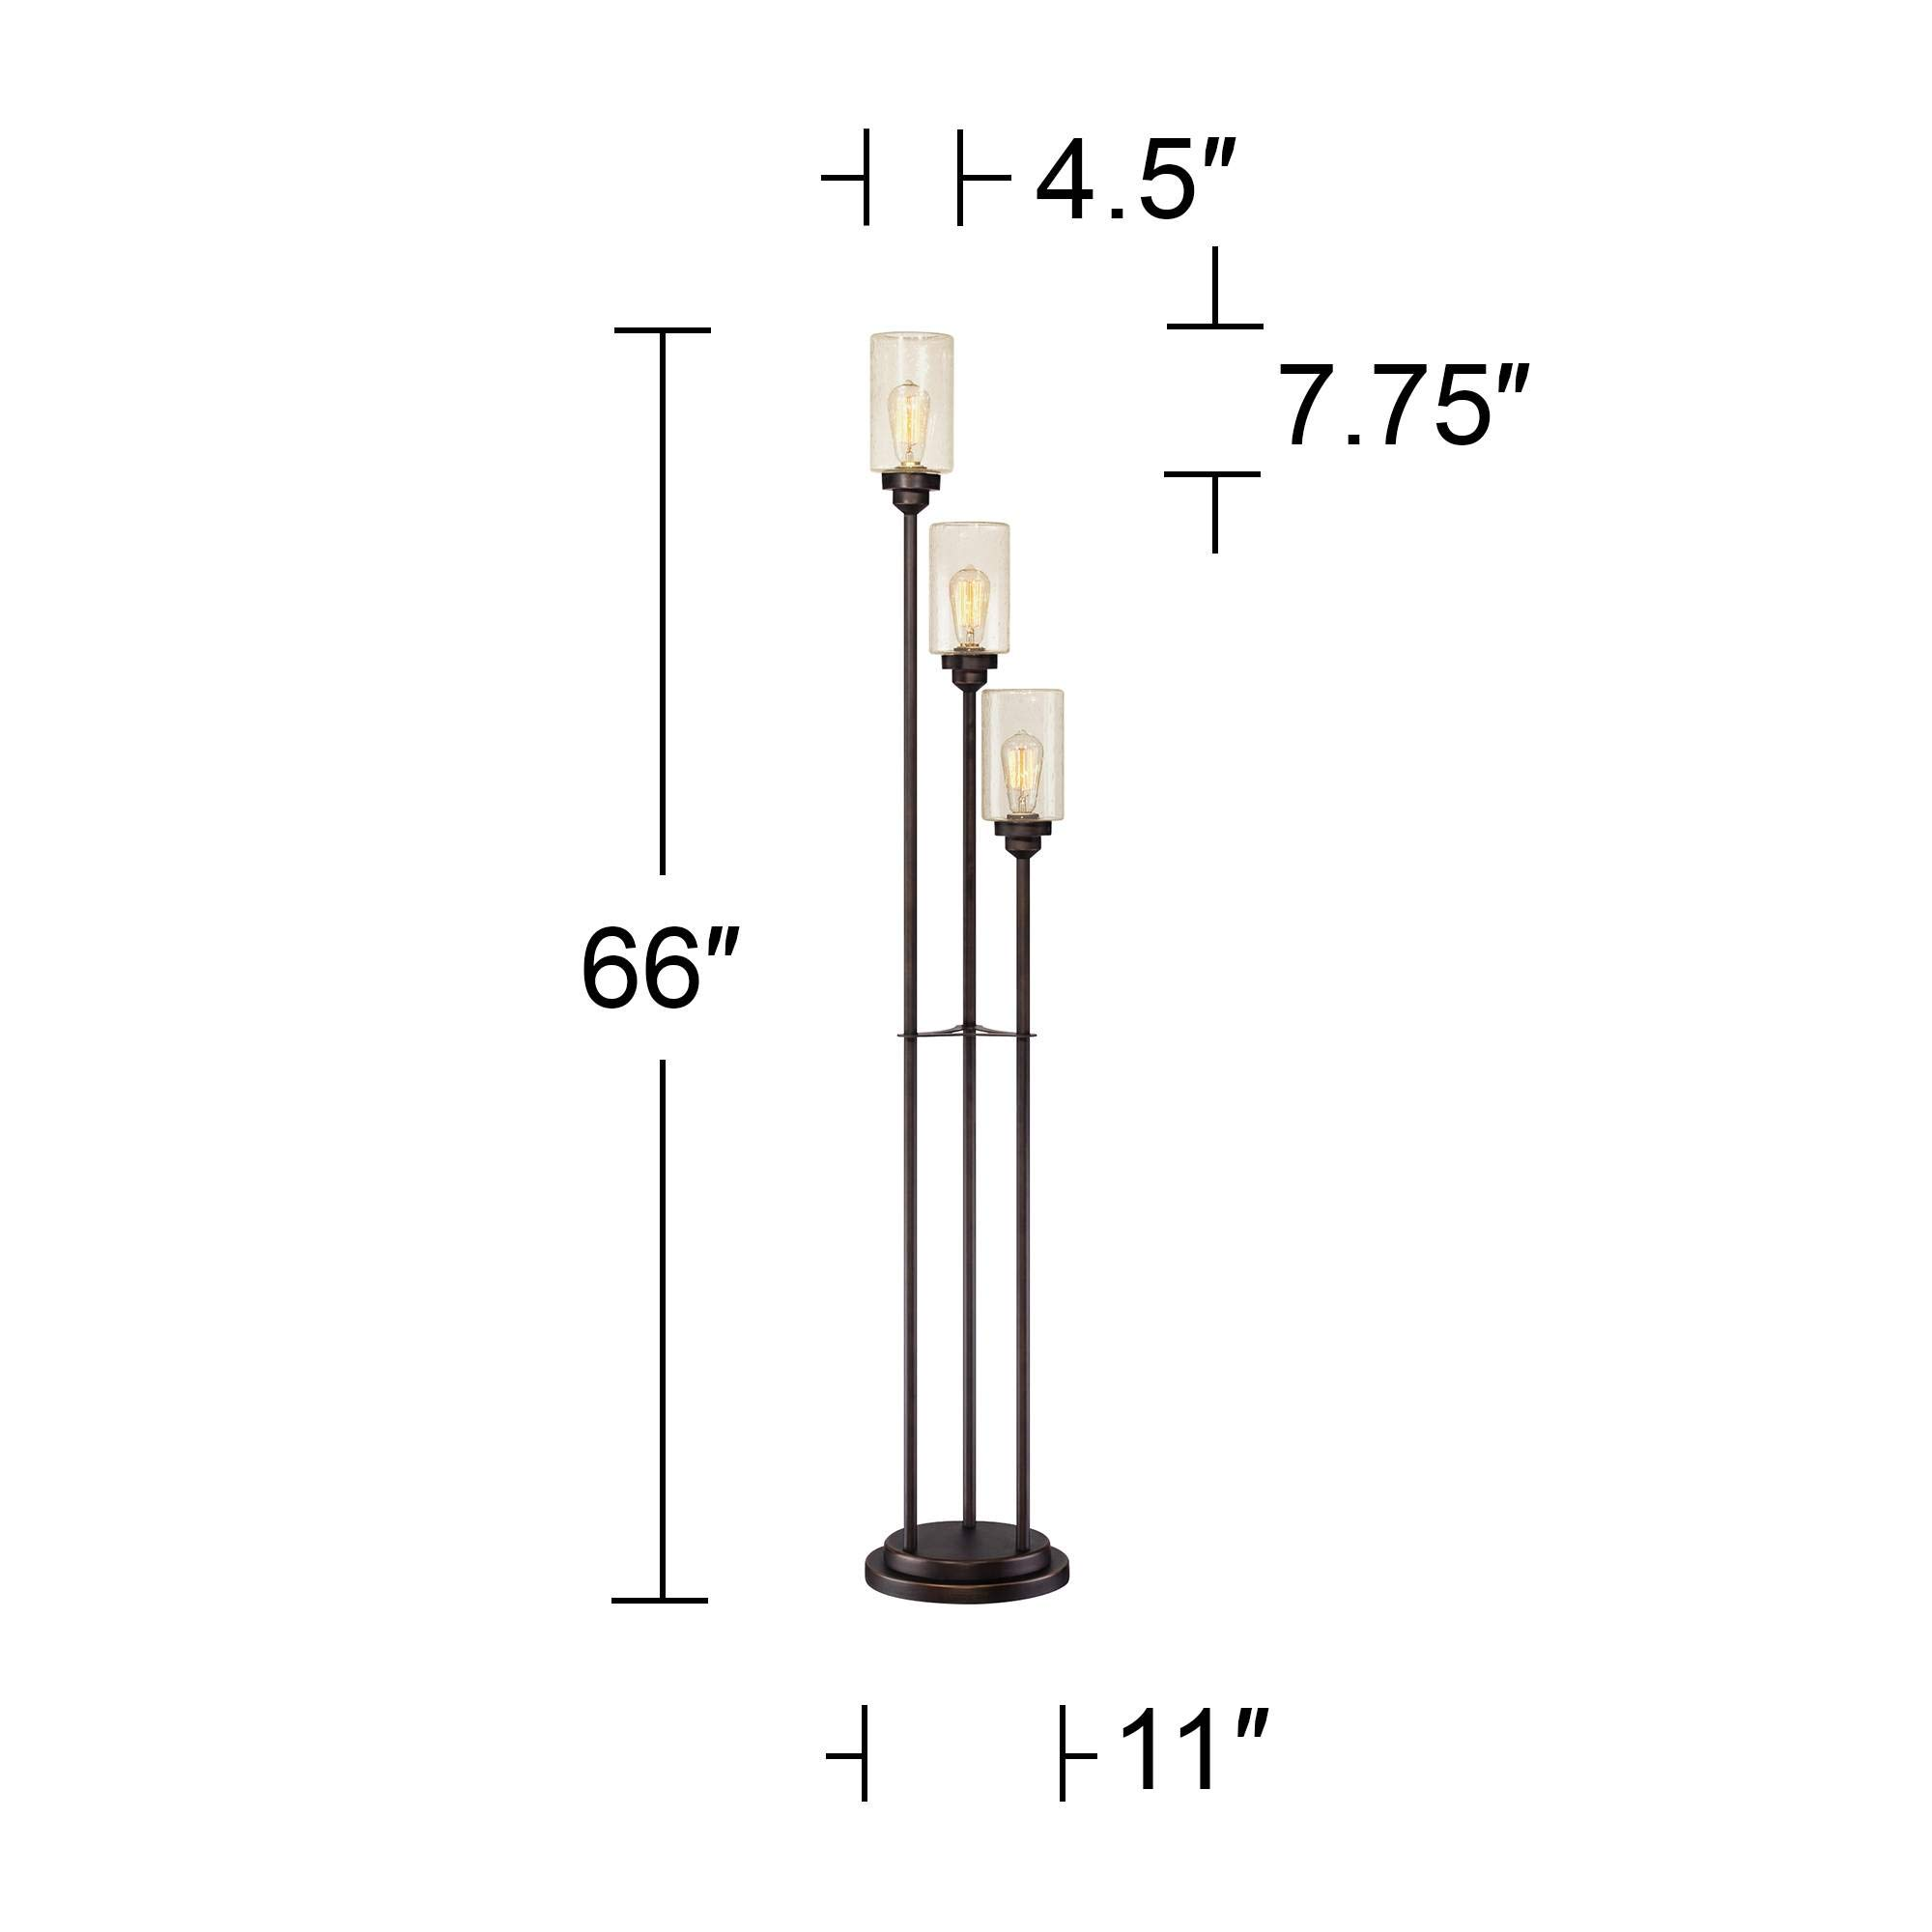 Libby Vintage Floor Lamp 3-Light Oiled Bronze Amber Seedy Glass Dimmable LED Edison Bulb for Living Room Bedroom - Franklin Iron Works by Franklin Iron Works (Image #7)